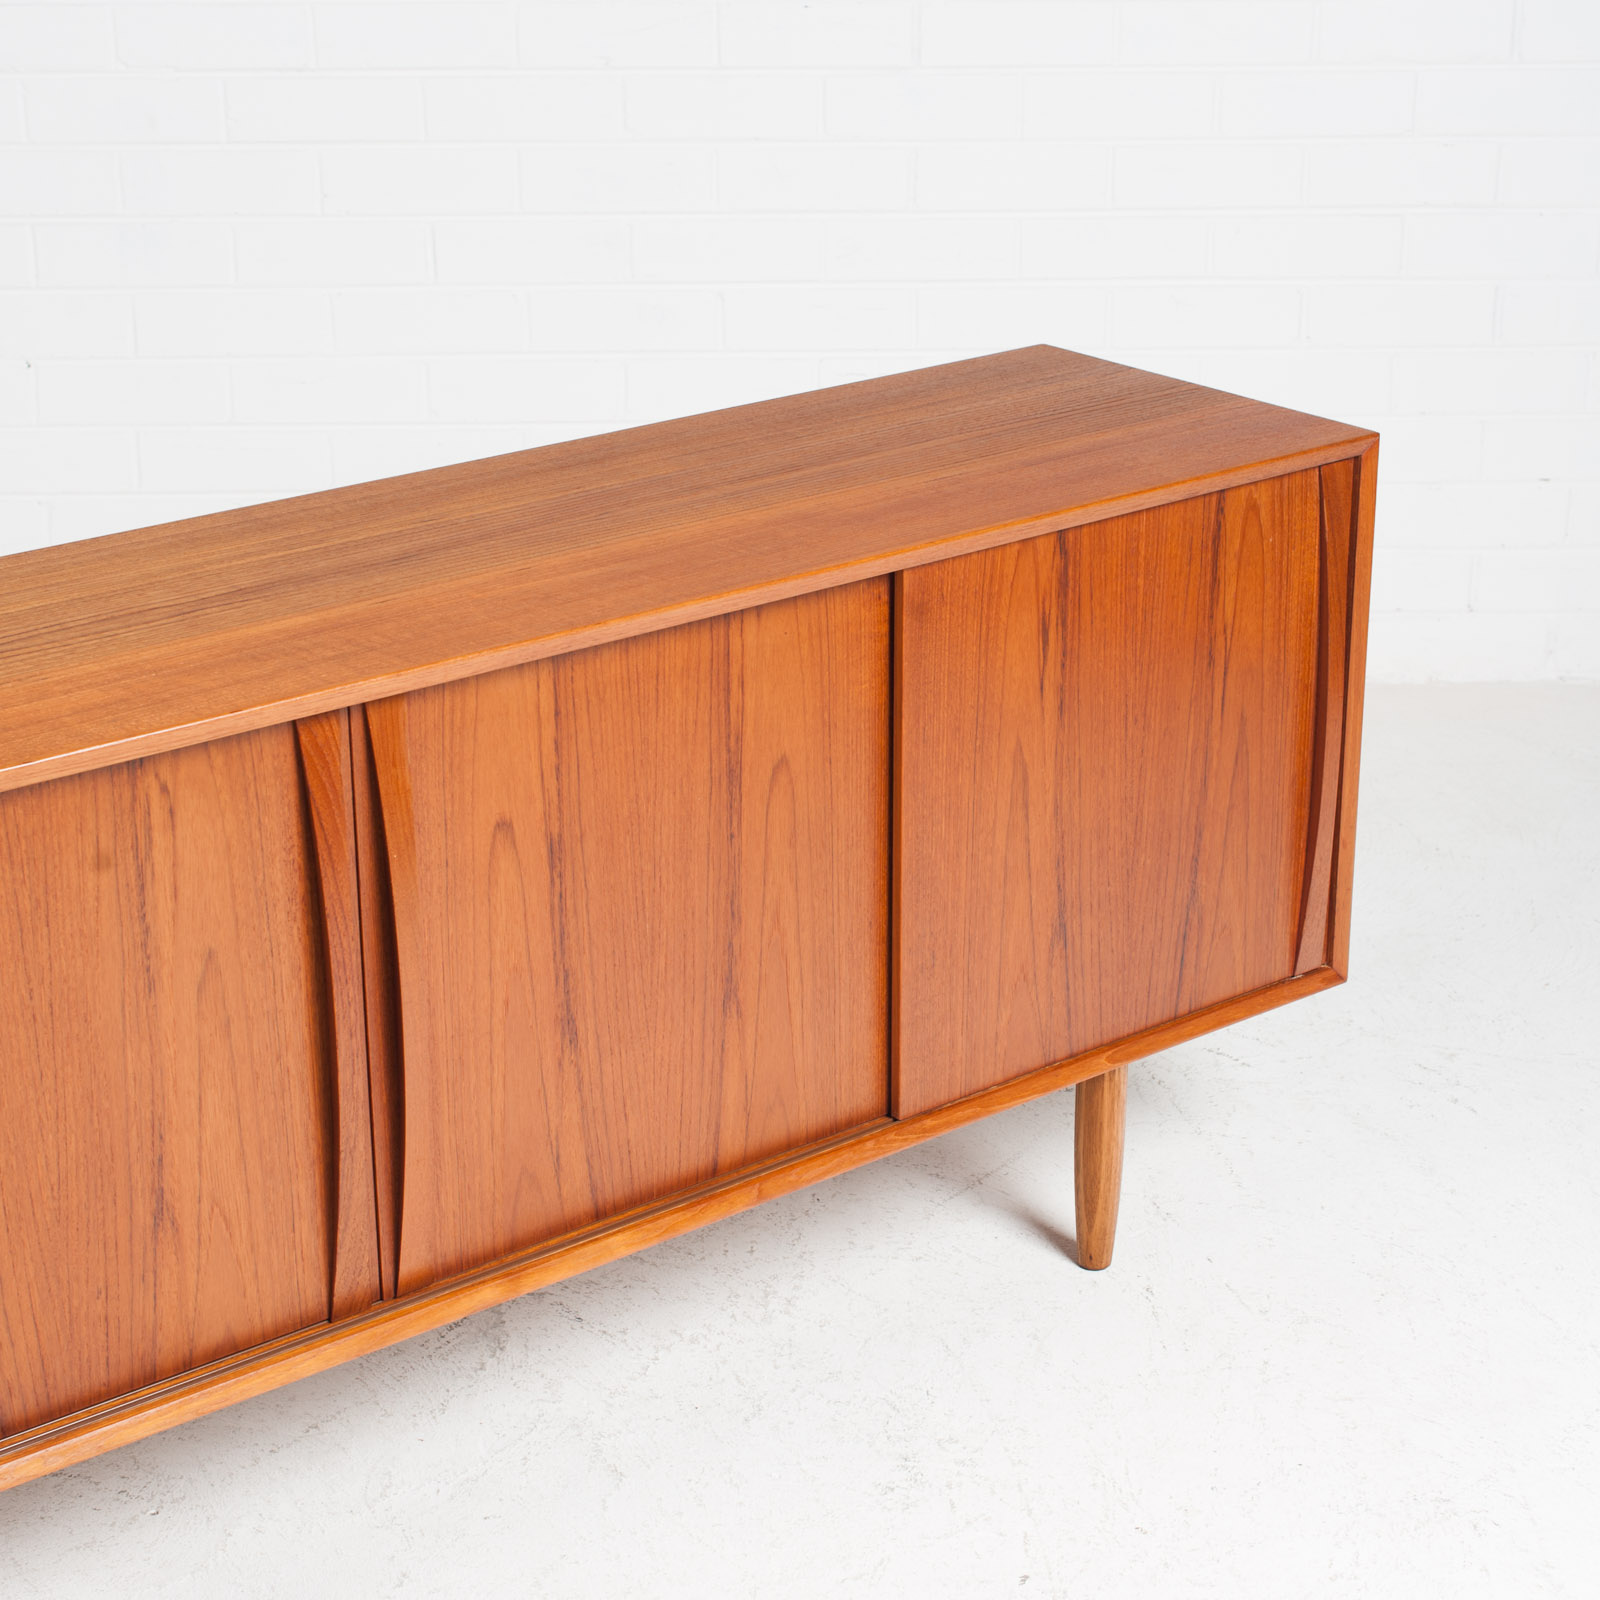 Sideboard In Teak With Two Sliding Drawers 1960s Denmark 04